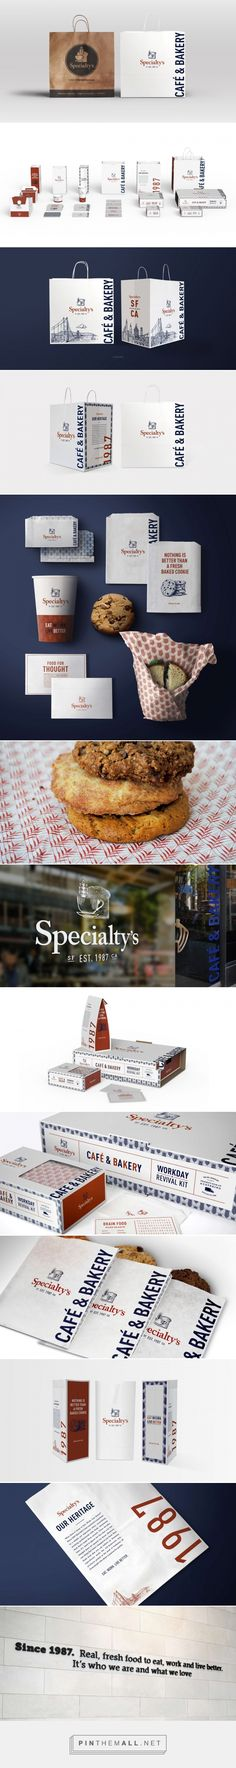 Specialty's Café and Bakery | Packaging Redesign + Branding | Creative Retail…